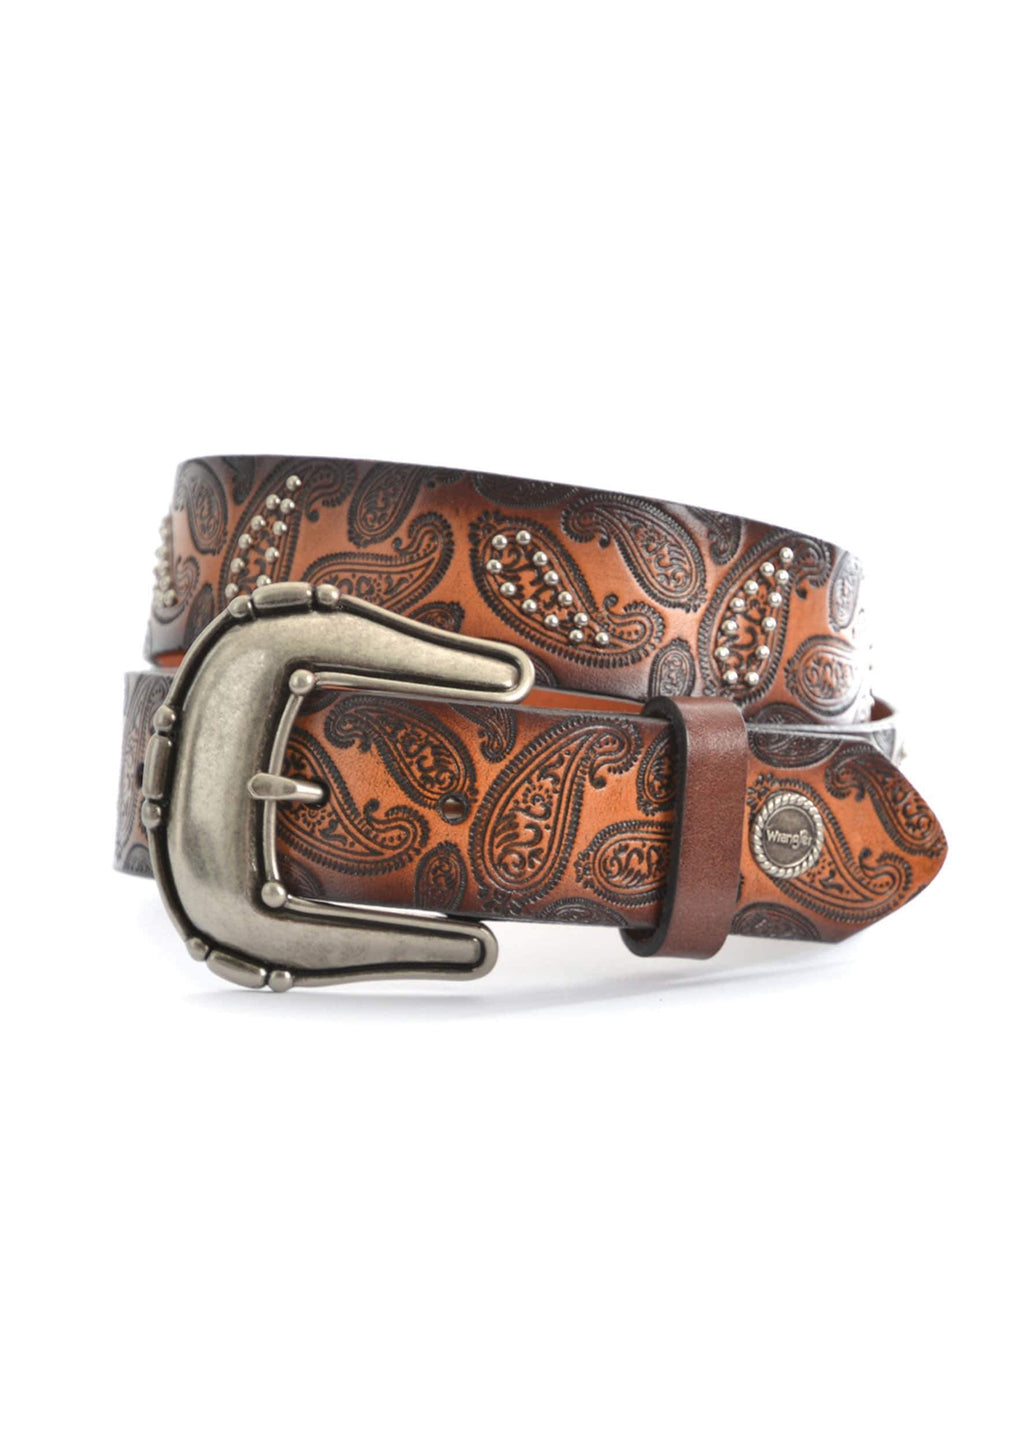 Wrangler Womens Paisley Belt Dark Tan/Coffee - Gympie Saddleworld & Country Clothing